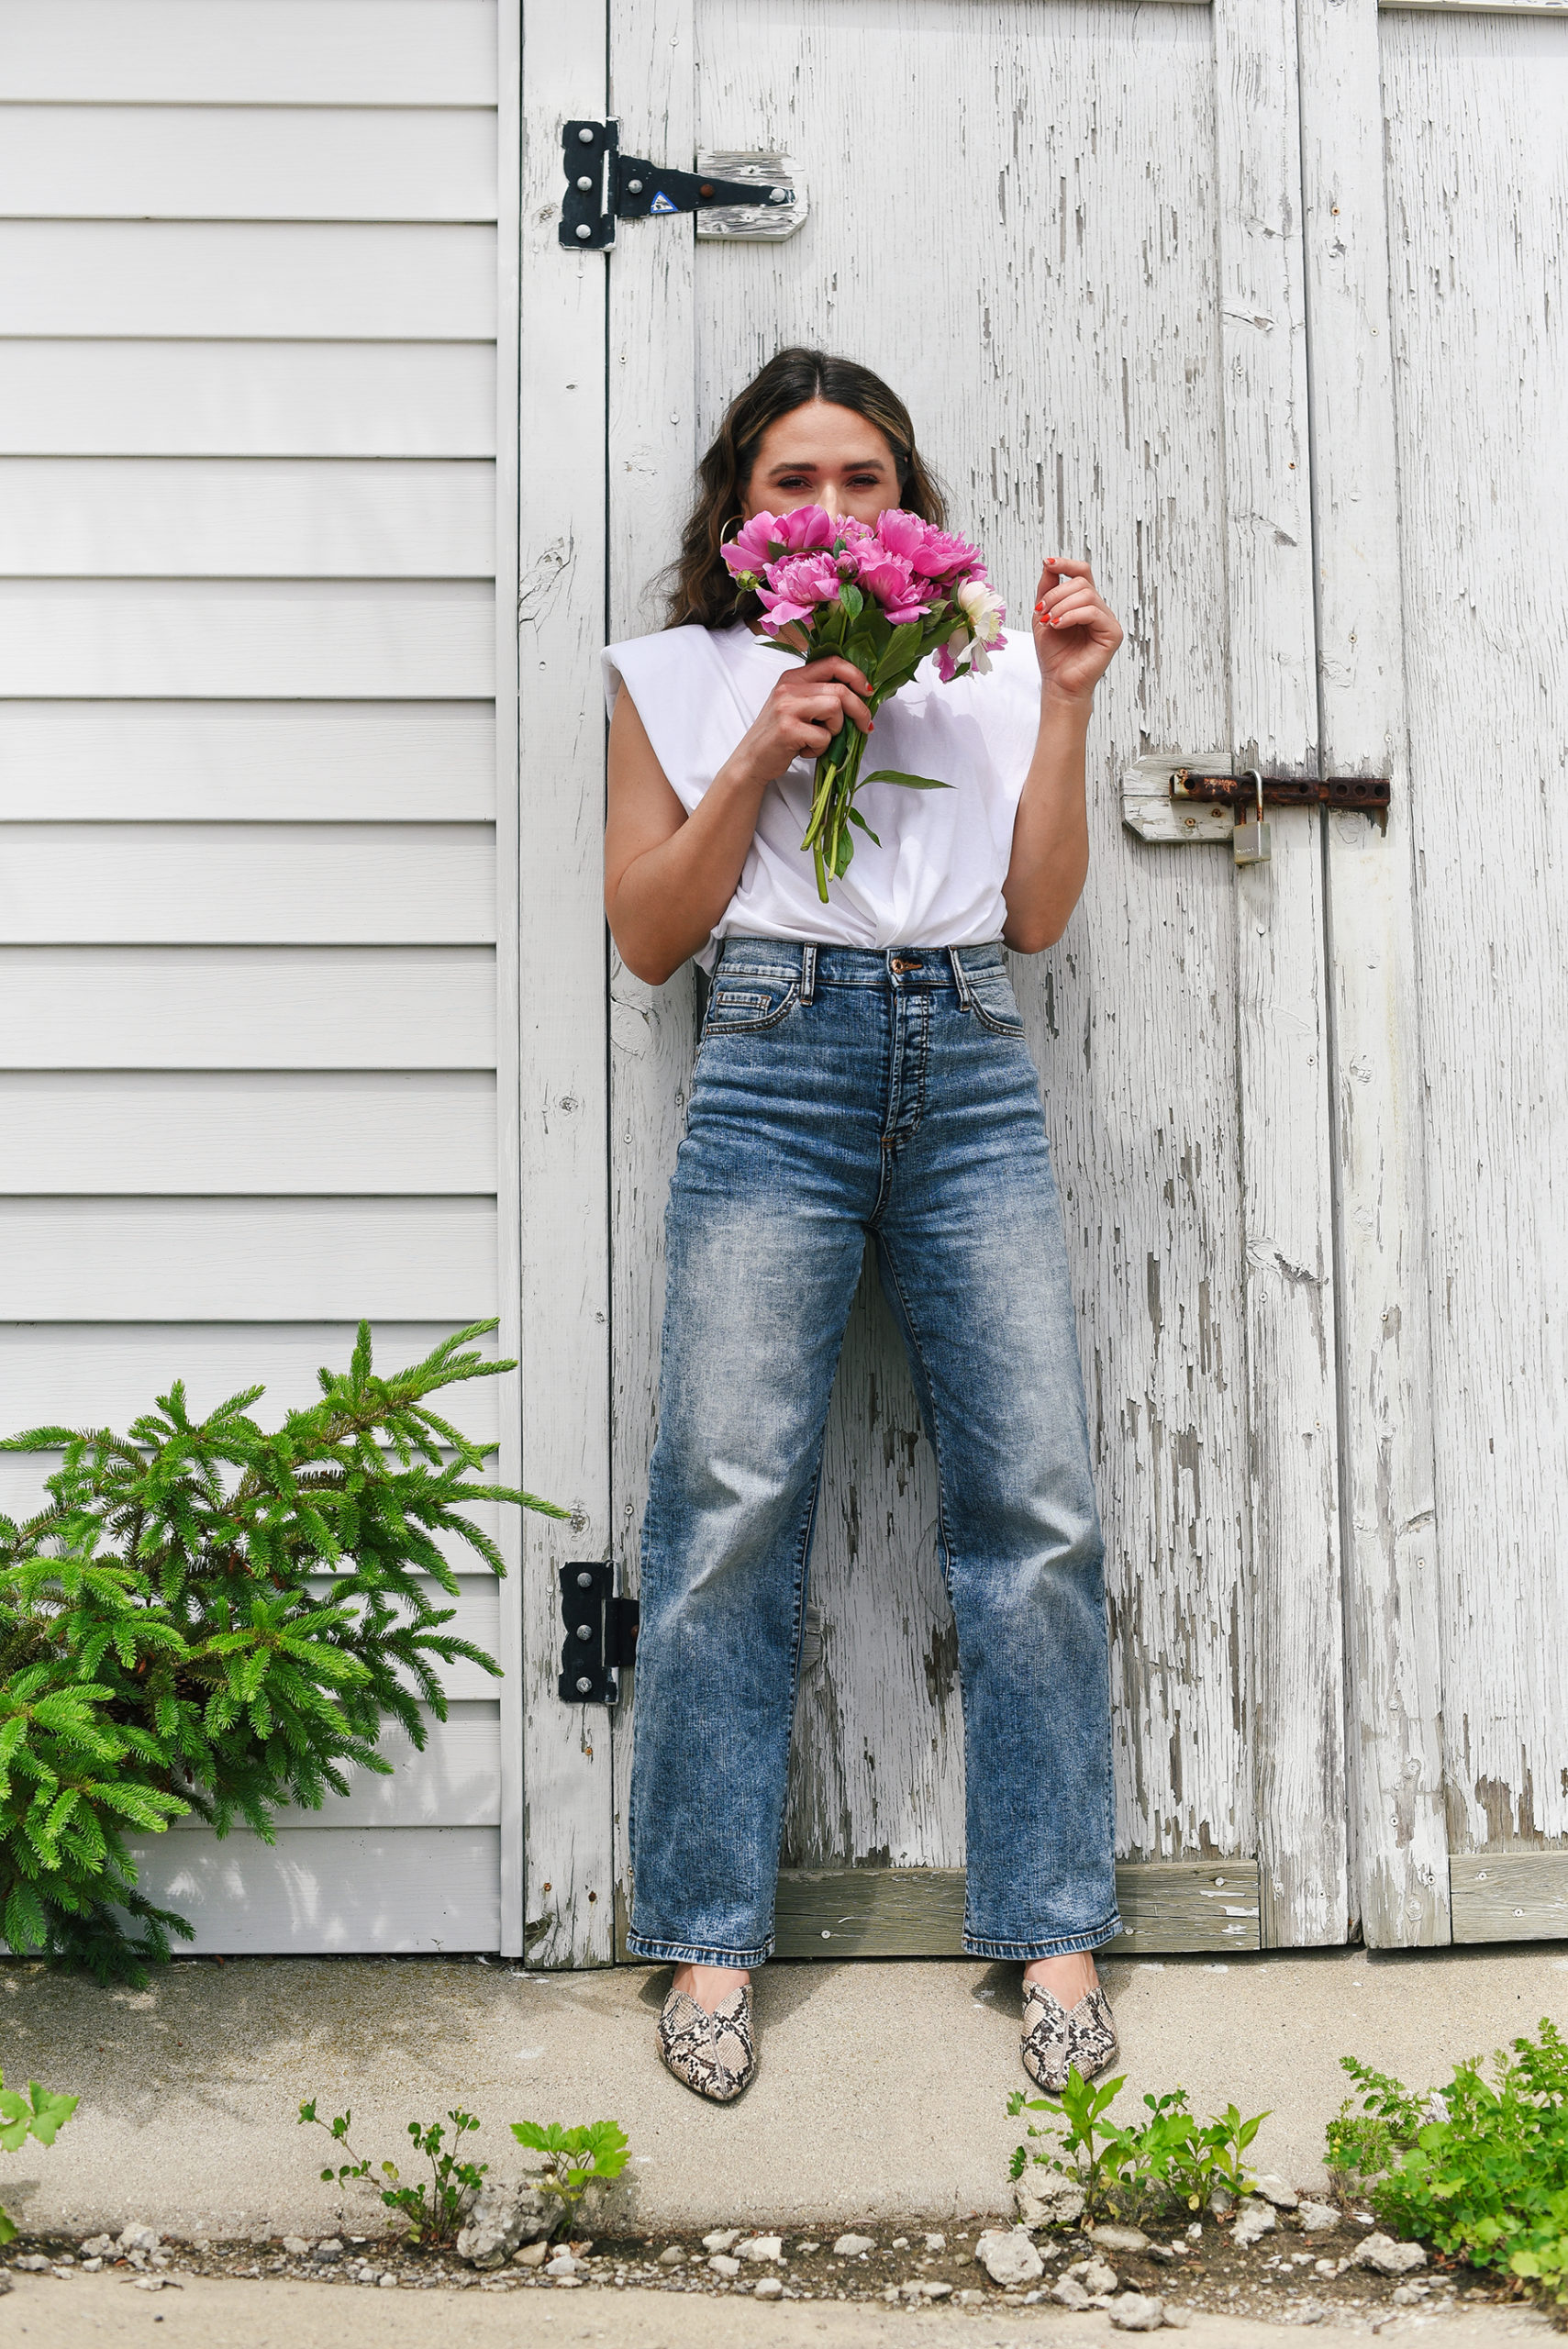 white-tee-light-blue-jeans-crimped-hair-summer-girl-easy-outfit-street-style-look-peony